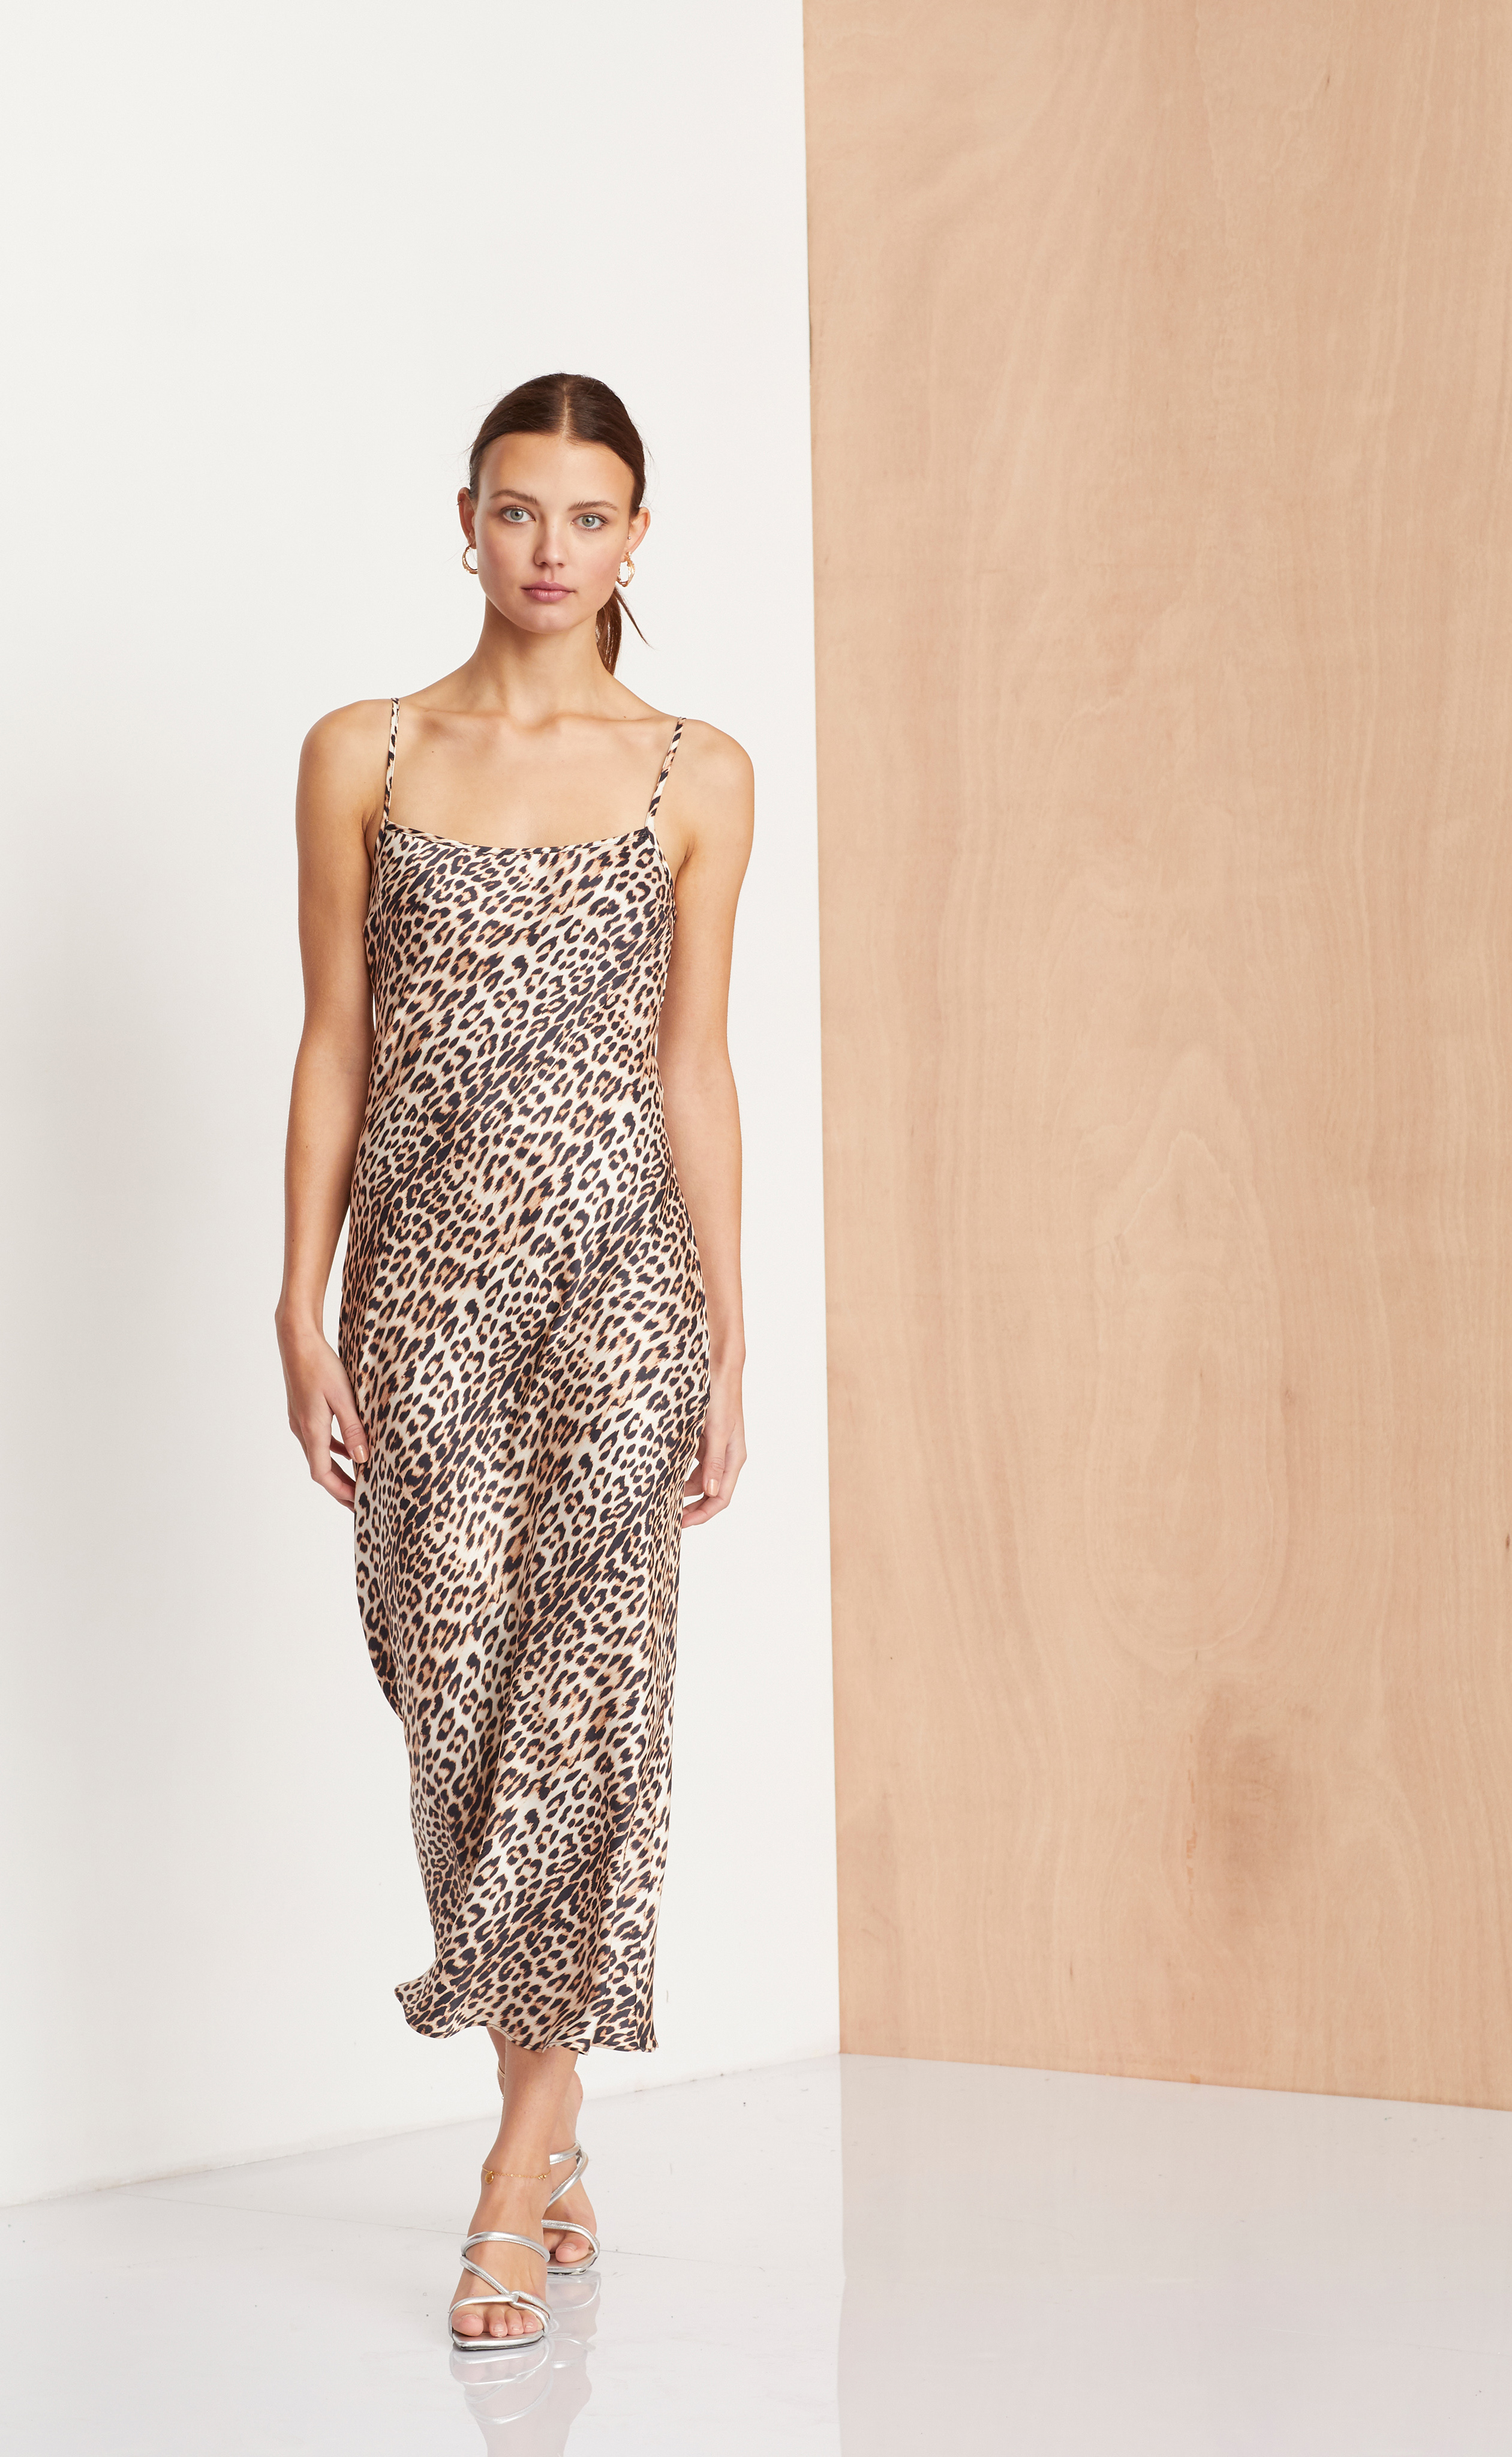 bed5e5936 ... Dresses » BEC & BRIDGE Feline Midi Dress – Leopard Print.  A19B-D1609_01703 copy